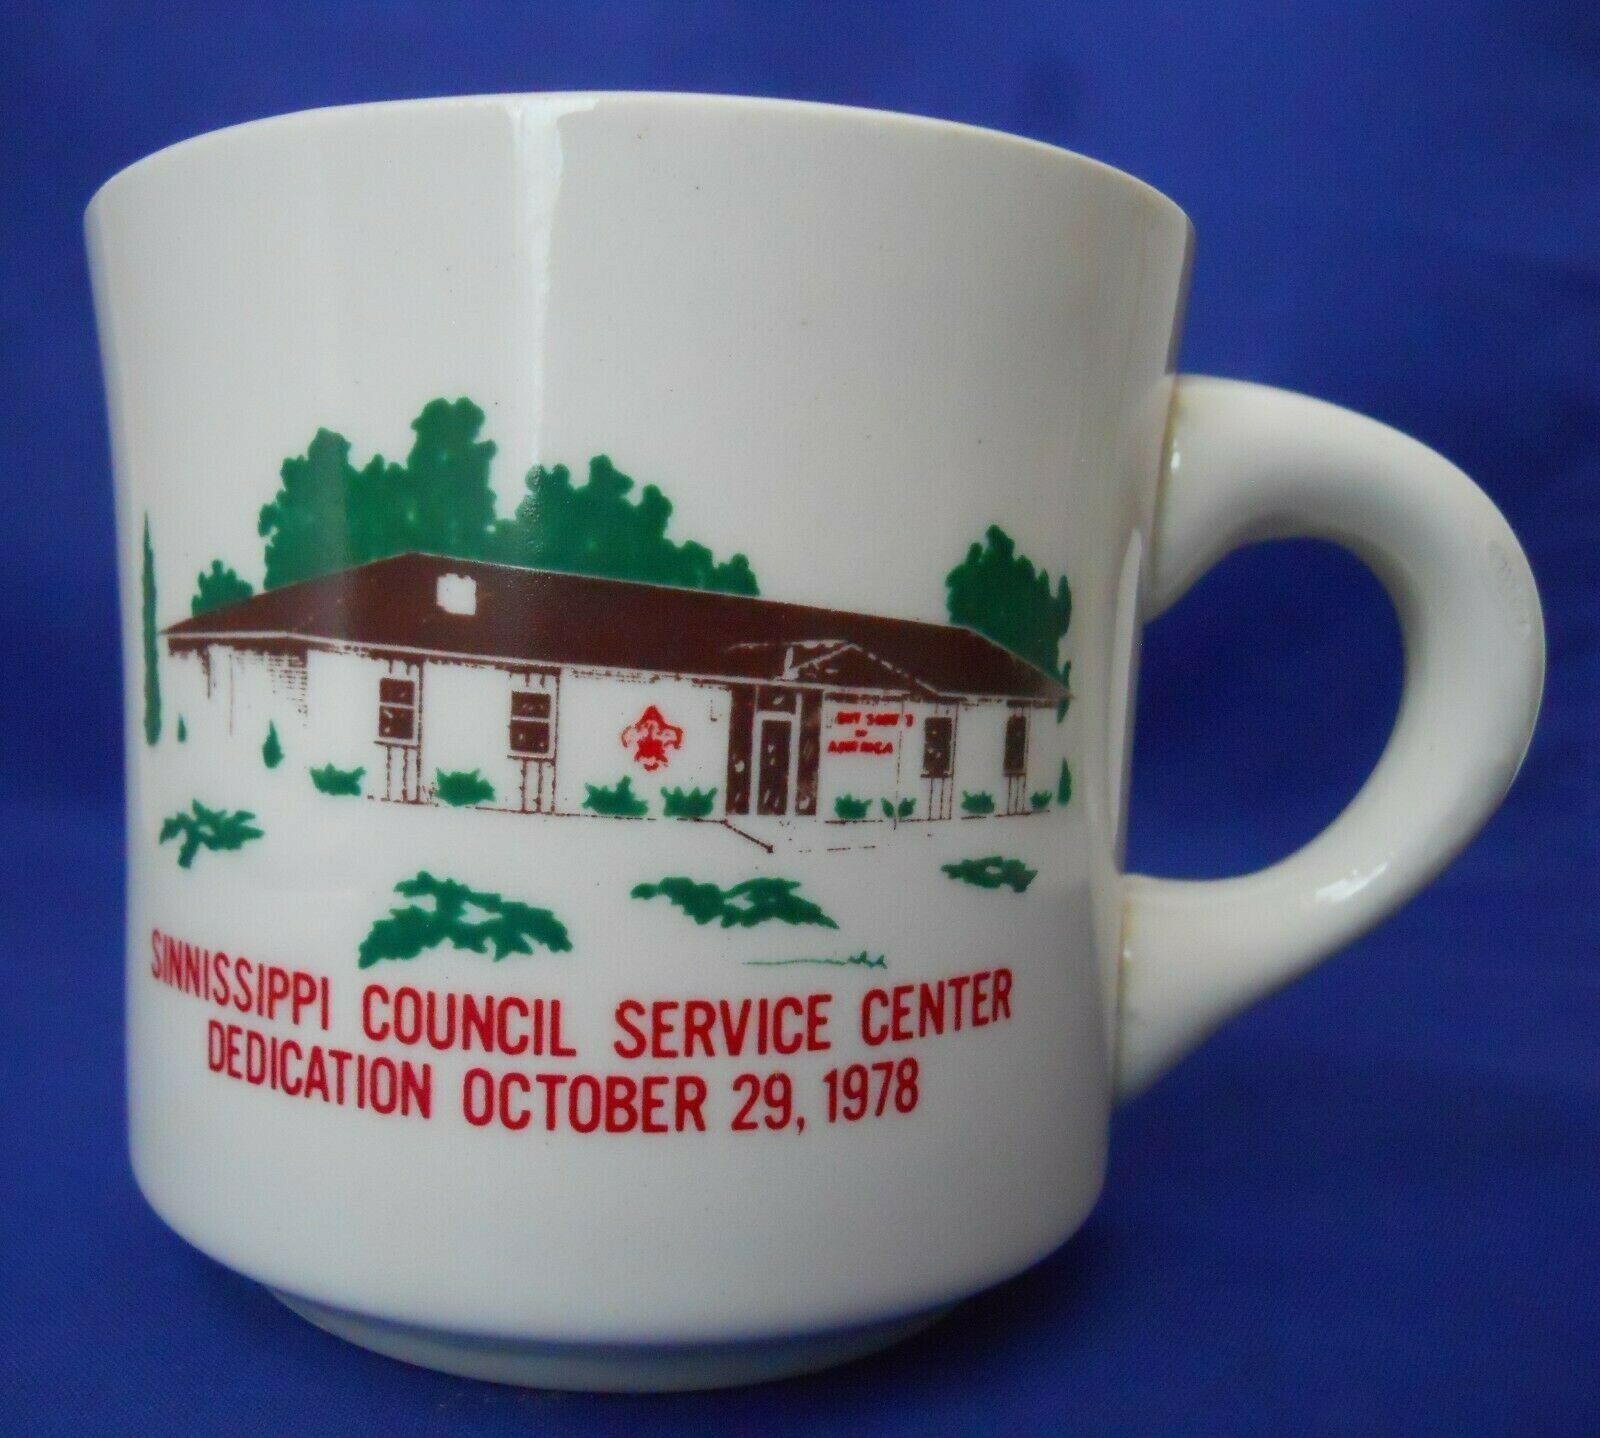 Vintage Sinnissippi Council Service Center Boy Scouts B.S.A Coffee Mug Cup 1978 - $3.50